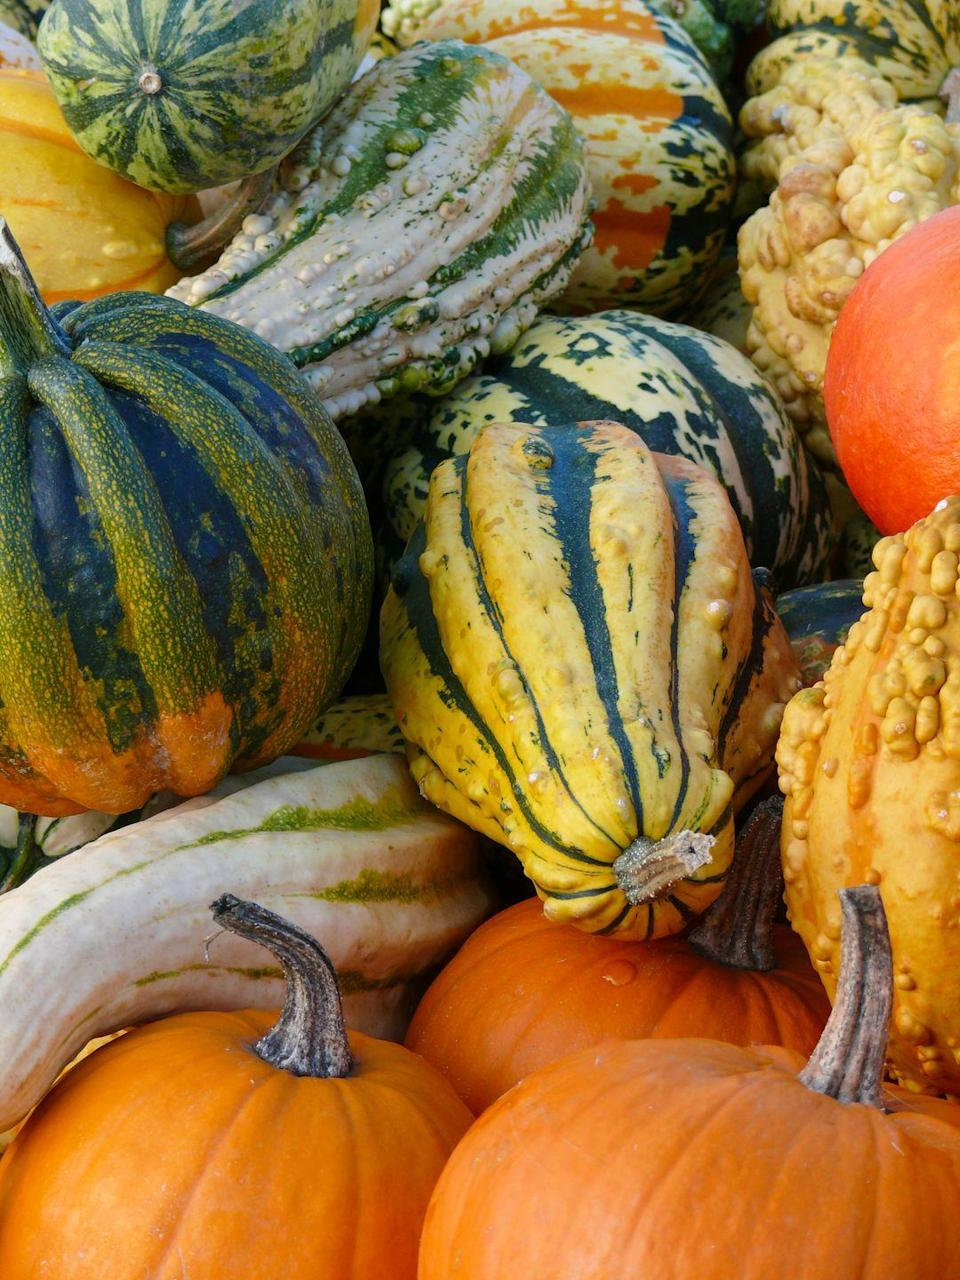 "<p>That's right, your zucchini and Jack o' lanterns are one and the same: <em><a href=""https://www.goodhousekeeping.com/food-recipes/a21246075/is-pumpkin-a-fruit/"" rel=""nofollow noopener"" target=""_blank"" data-ylk=""slk:Cucurbita pepo"" class=""link rapid-noclick-resp"">Cucurbita pepo</a></em>, a species that originated in Mexico more than 10,000 years ago. Farmers have since developed the many cultivars we know and use today. </p><p><strong>RELATED: </strong><a href=""https://www.goodhousekeeping.com/food-recipes/g562/zucchini-recipes/"" rel=""nofollow noopener"" target=""_blank"" data-ylk=""slk:40 Healthy and Delicious Zucchini Recipes"" class=""link rapid-noclick-resp"">40 Healthy and Delicious Zucchini Recipes</a></p>"